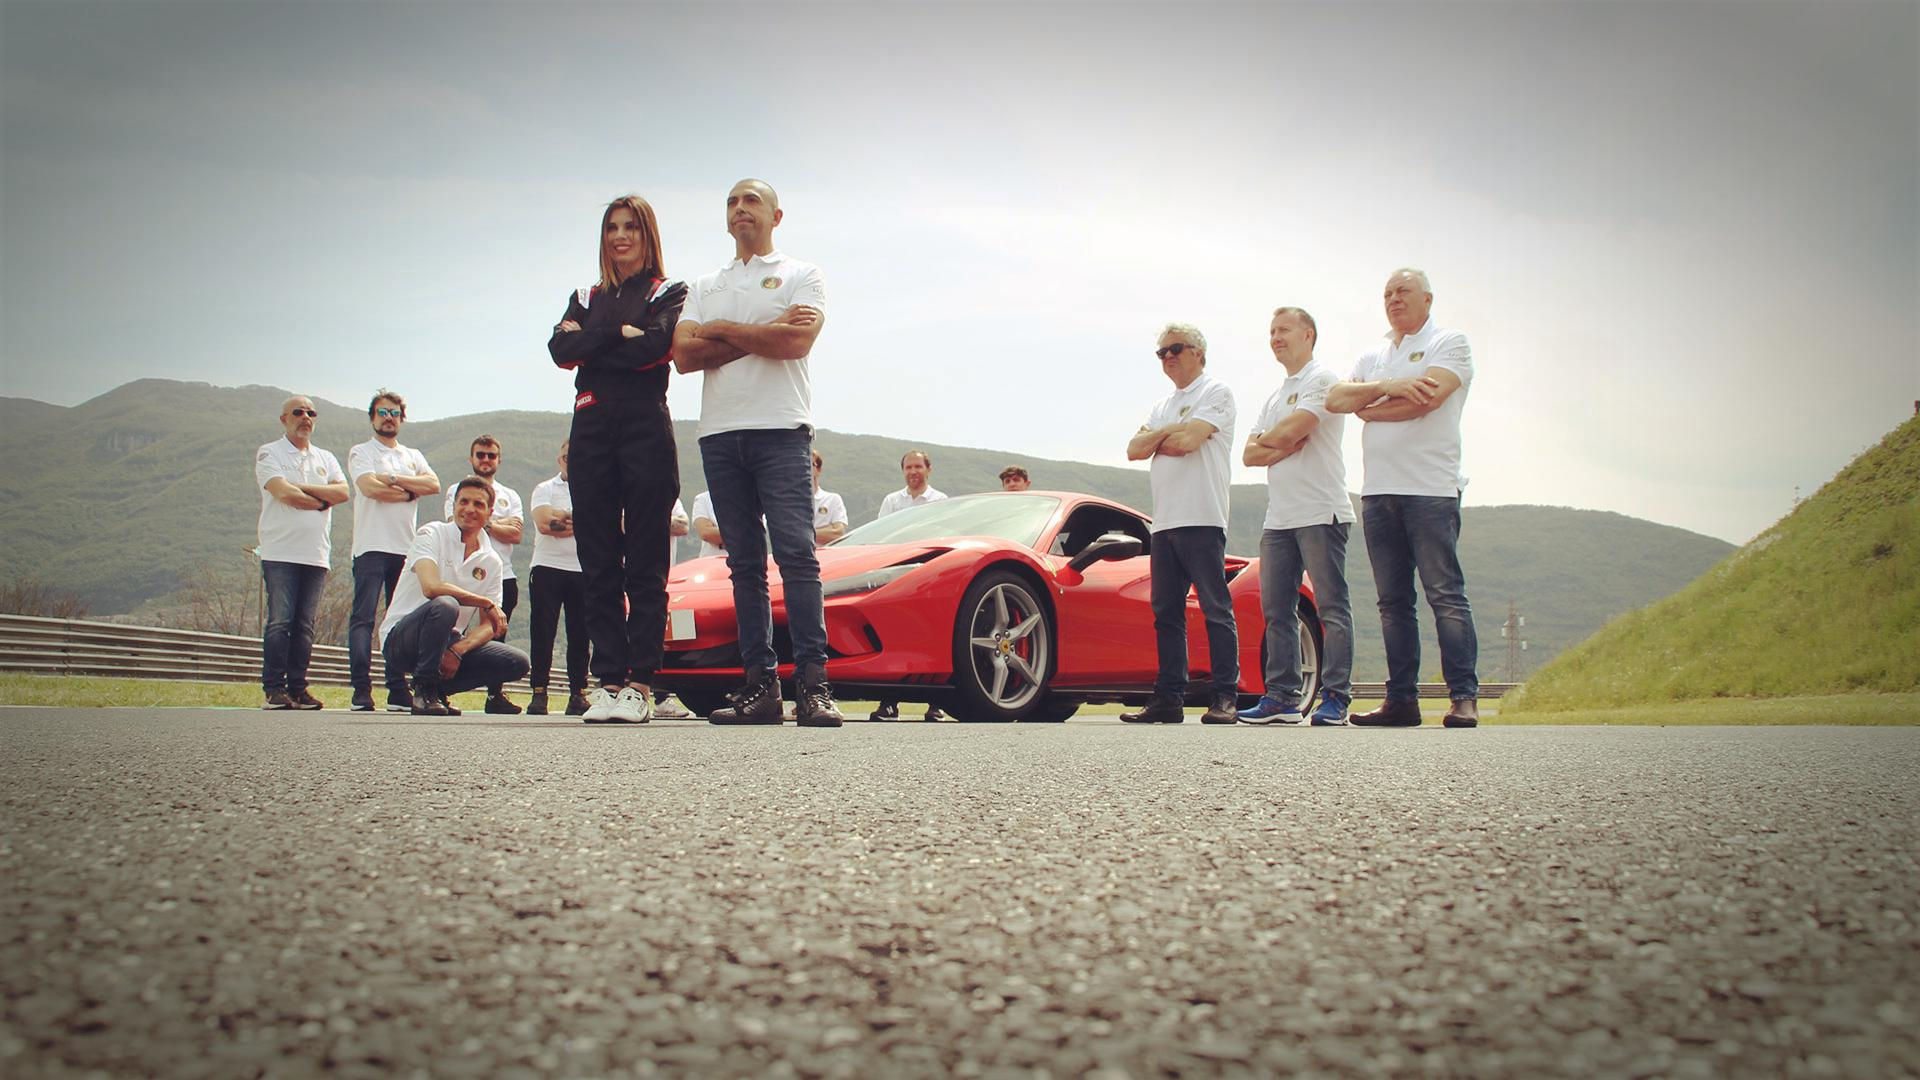 fabio-barone-ferrari-f8-tributo-guinness-world-record-2021-test-(144)